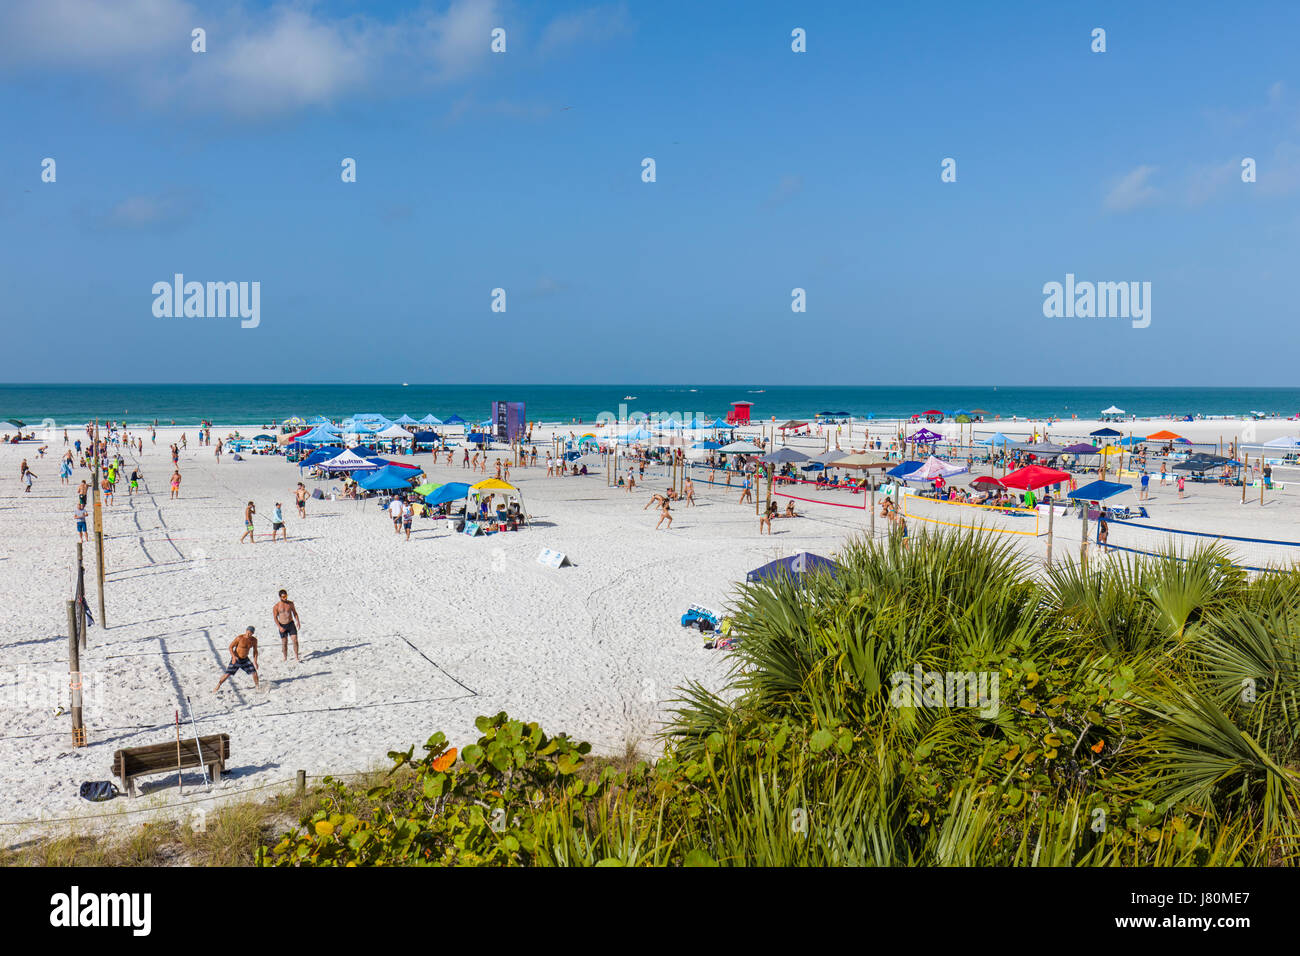 Dig the Beach Series volleyball tournament on Siesta Key Beach on the Gulf of Mexico in Sarasota Florida - Stock Image